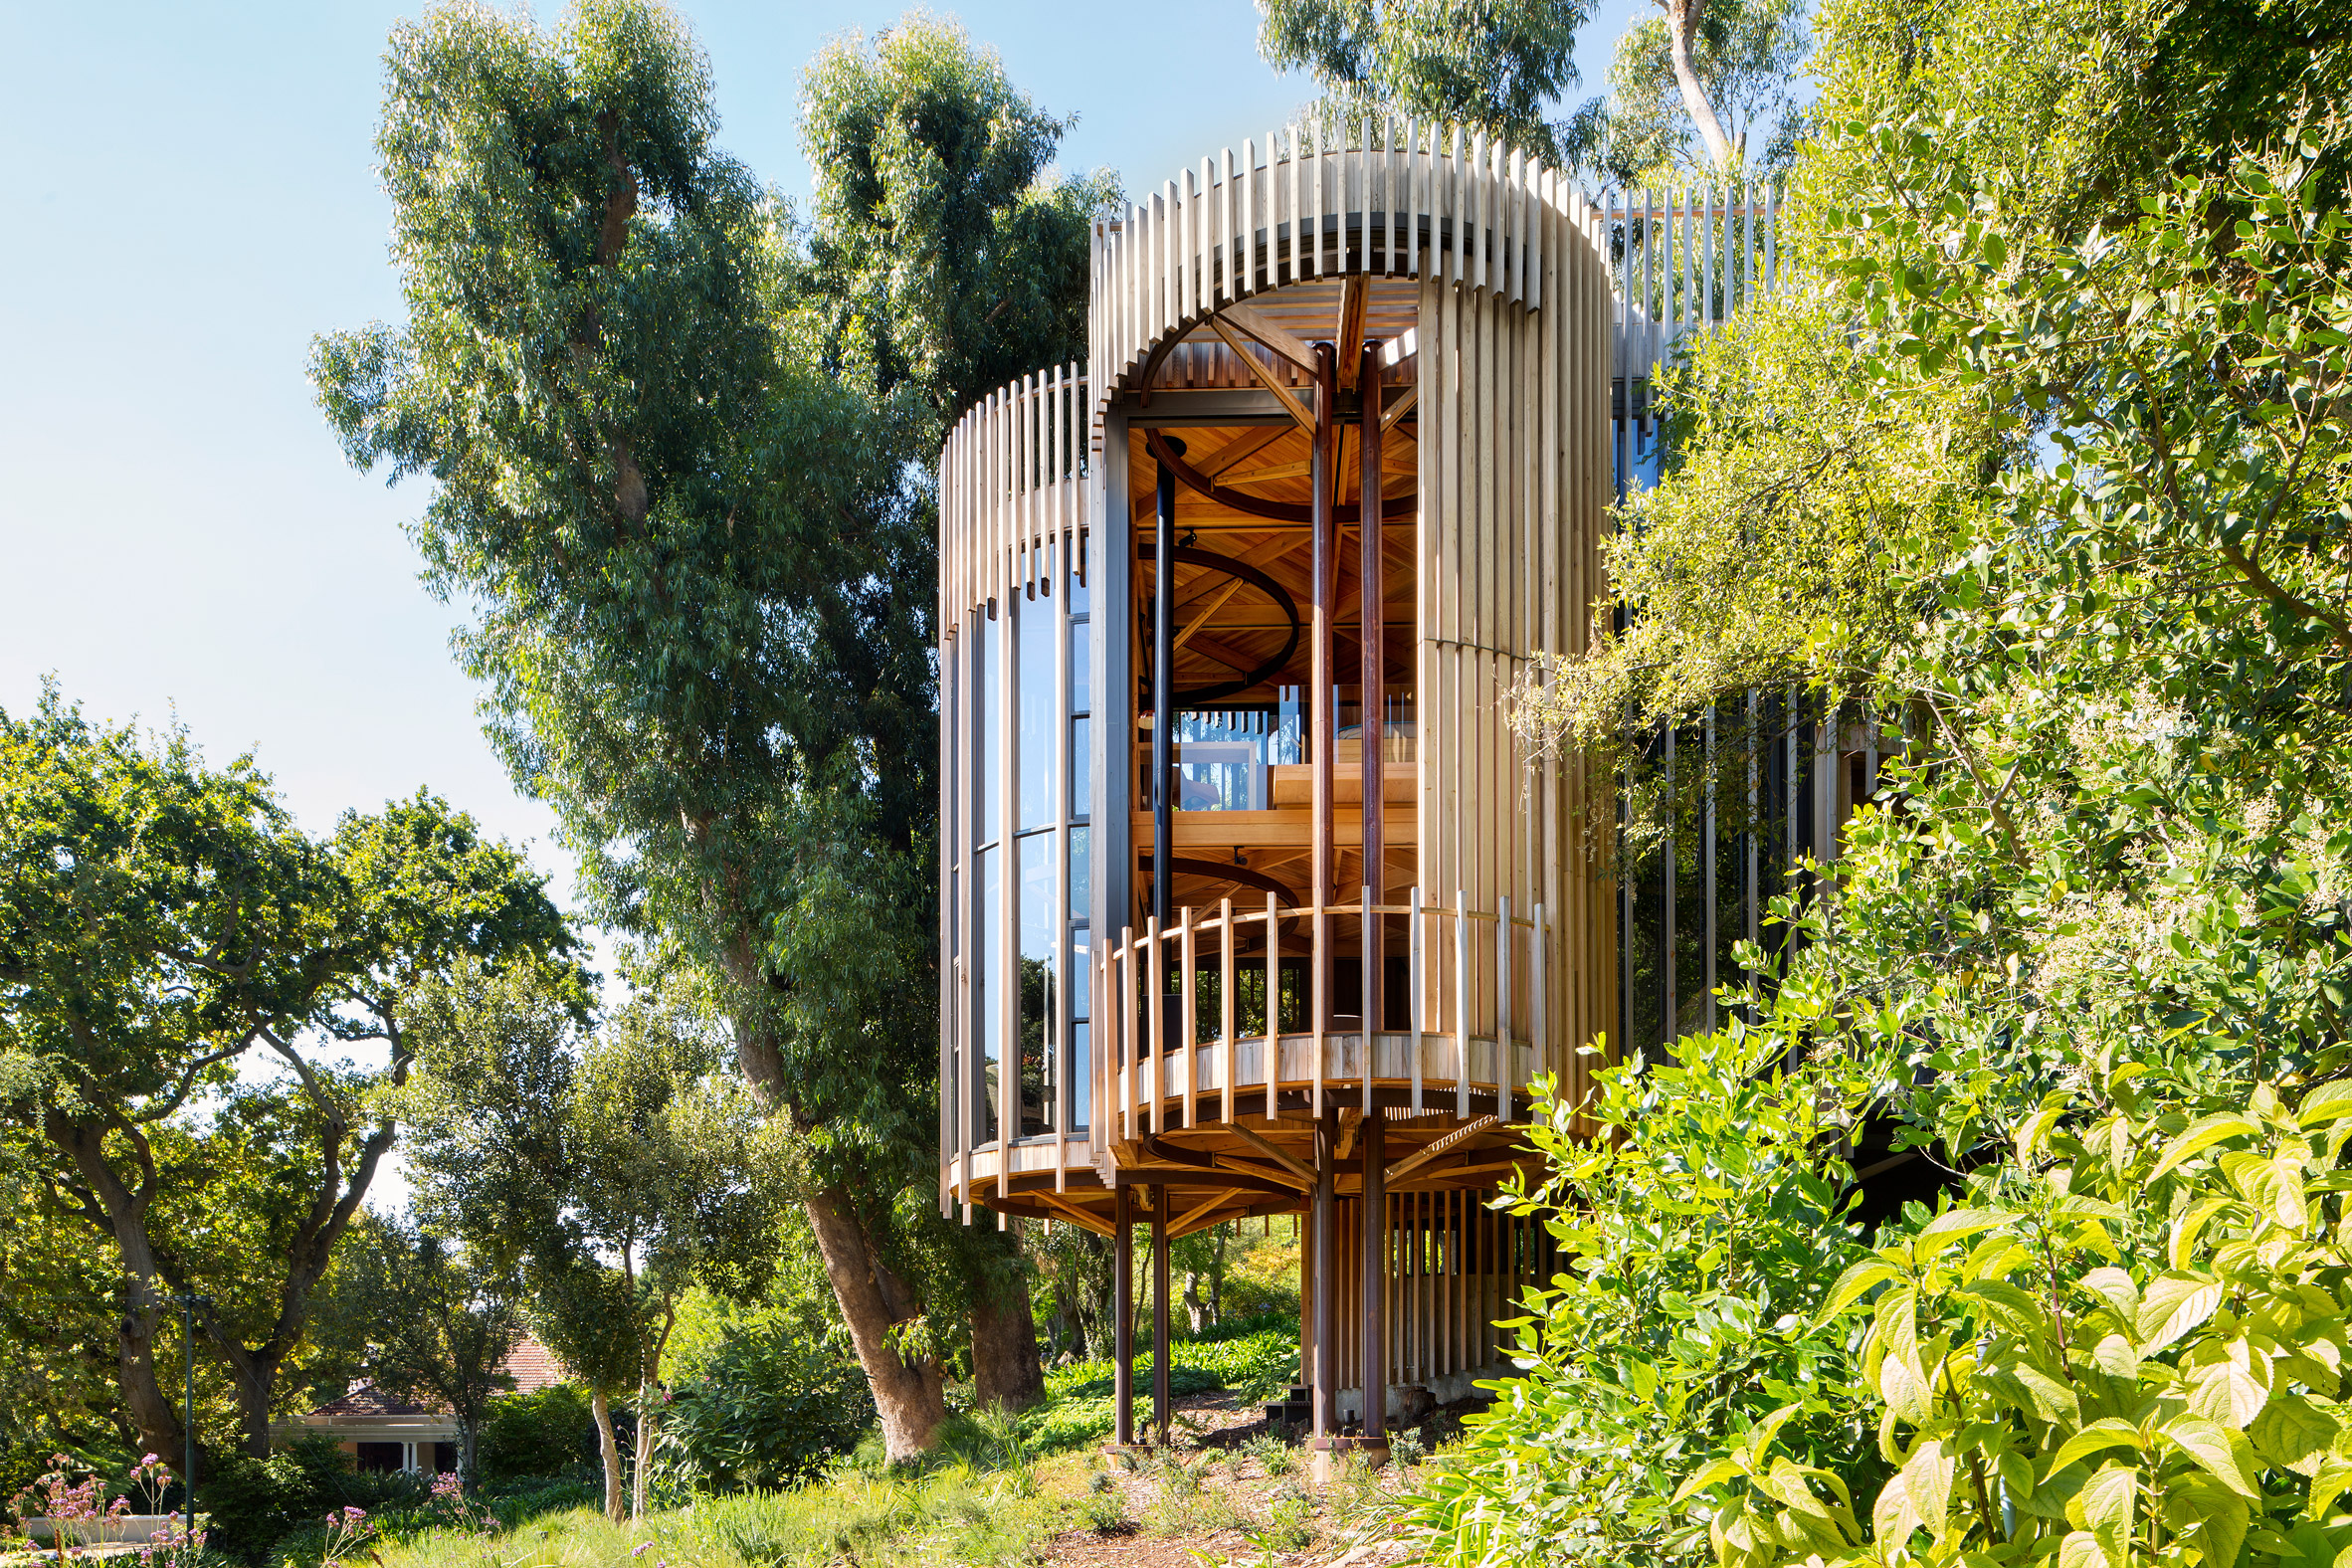 paarman-tree-house-by-mv-architecture-residential_dezeen_2364_col_10.jpg